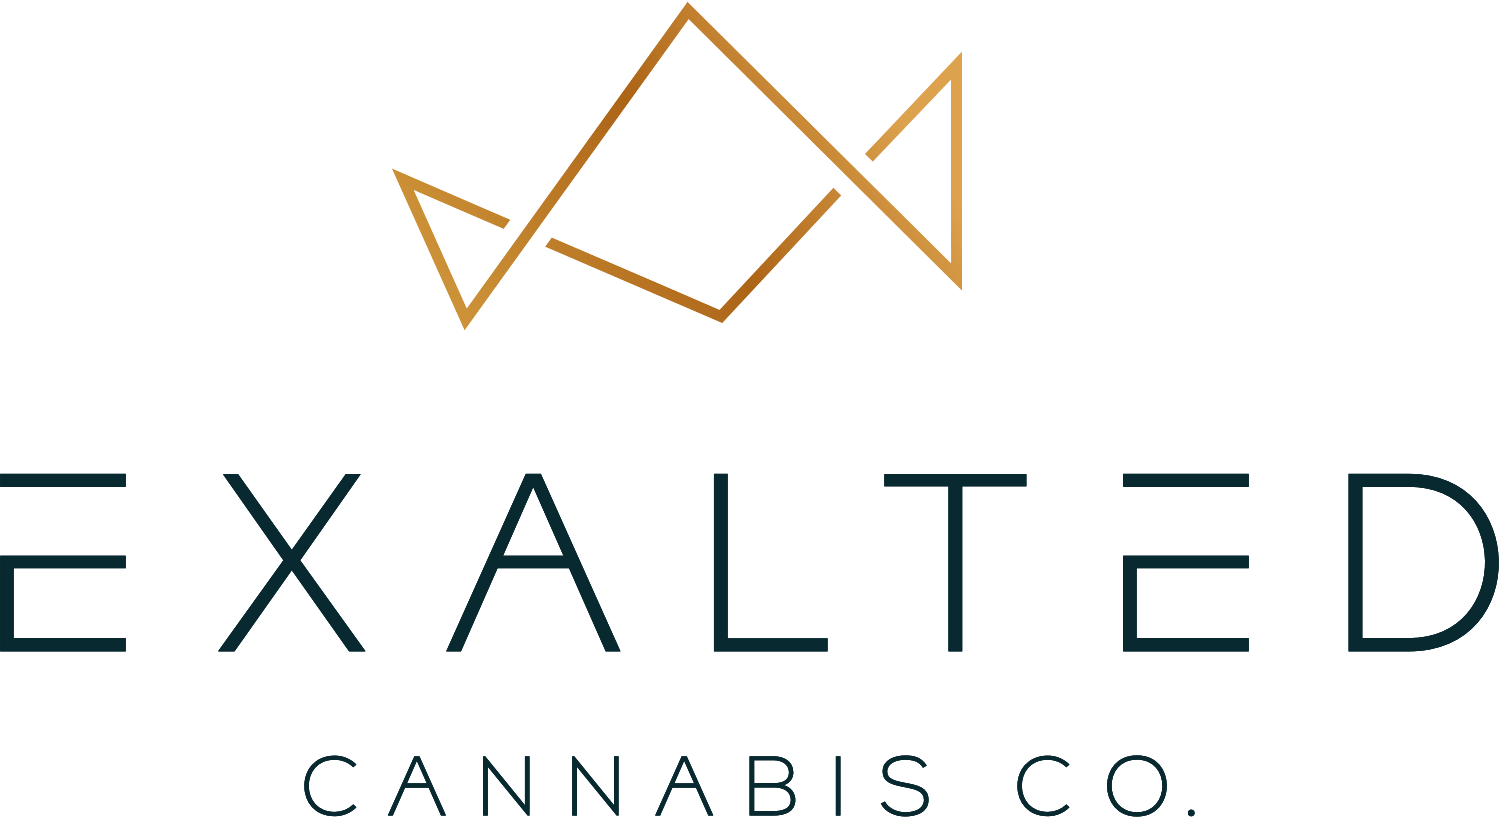 Exalted logo with a minimal, geometric gold crown outline that sits above large uppercase type that reads Exalted. Under Exalted, the type reads Cannabis Co. in uppercase letters in a thinner weight.